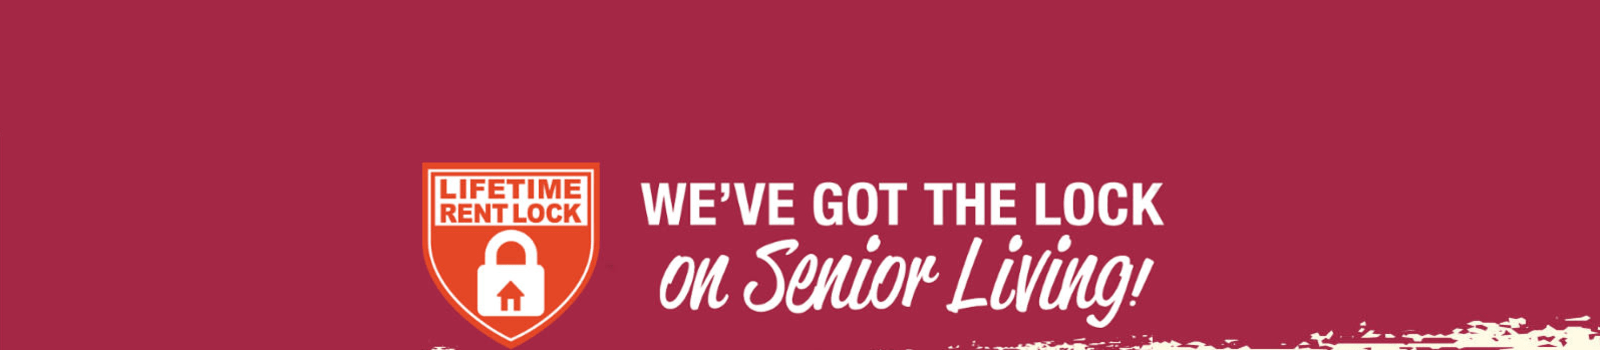 Senior living options at the senior living community in Yardley